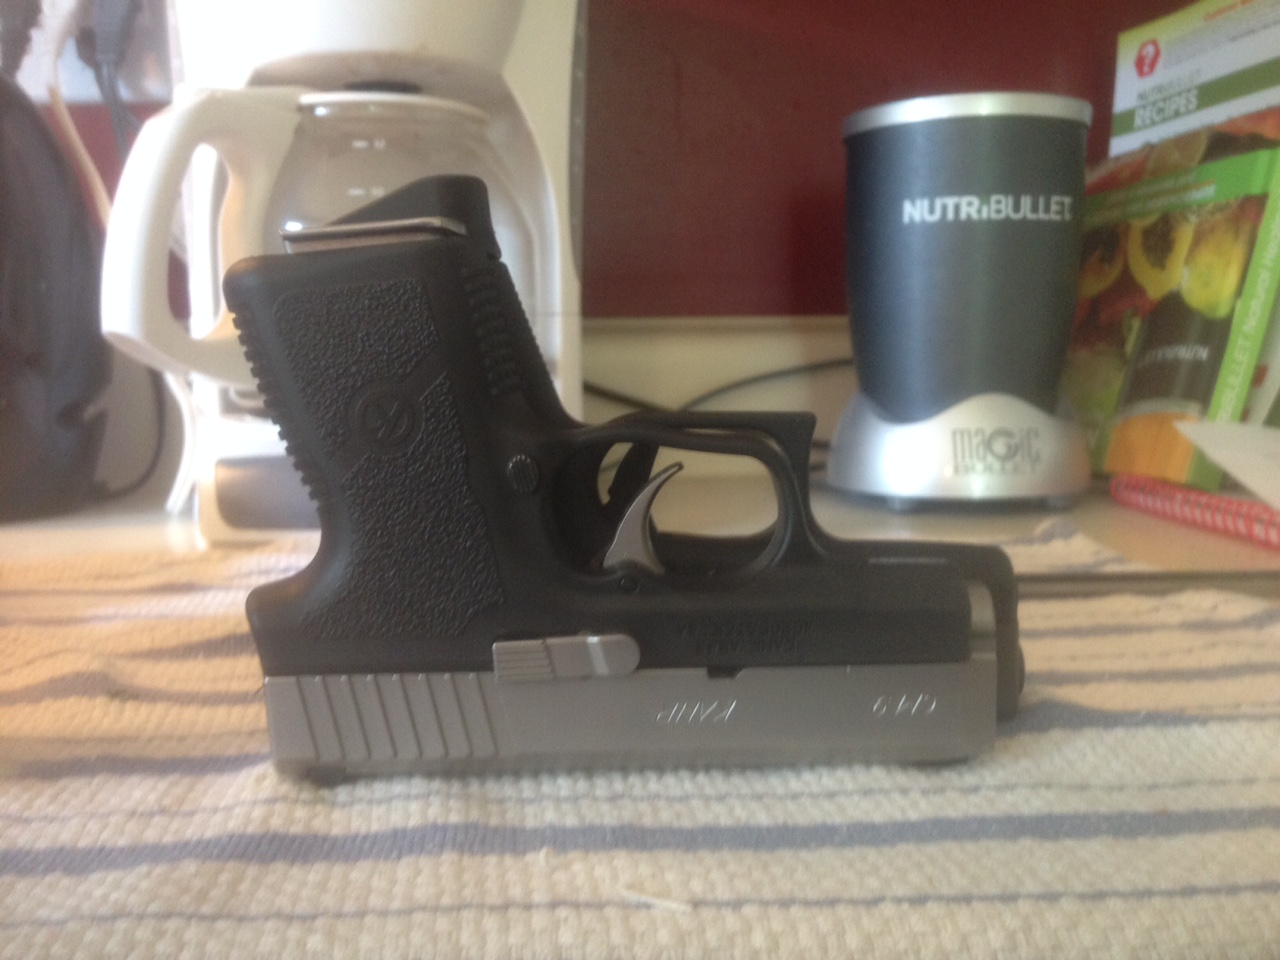 CM9 vs Glock 43 size comparison: not much real-world difference-img_1805.jpg